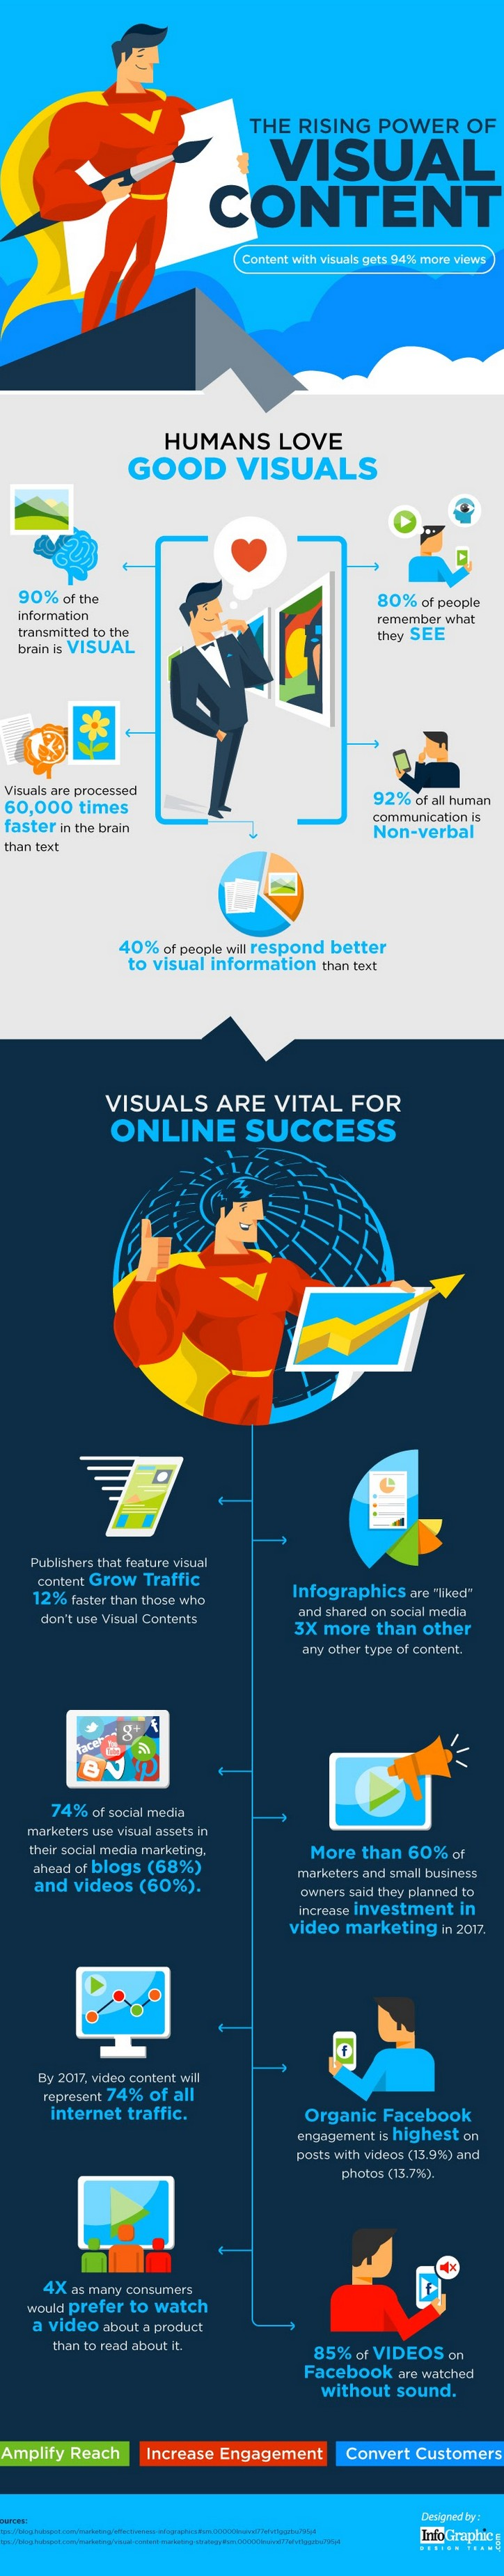 infographic-visual-content